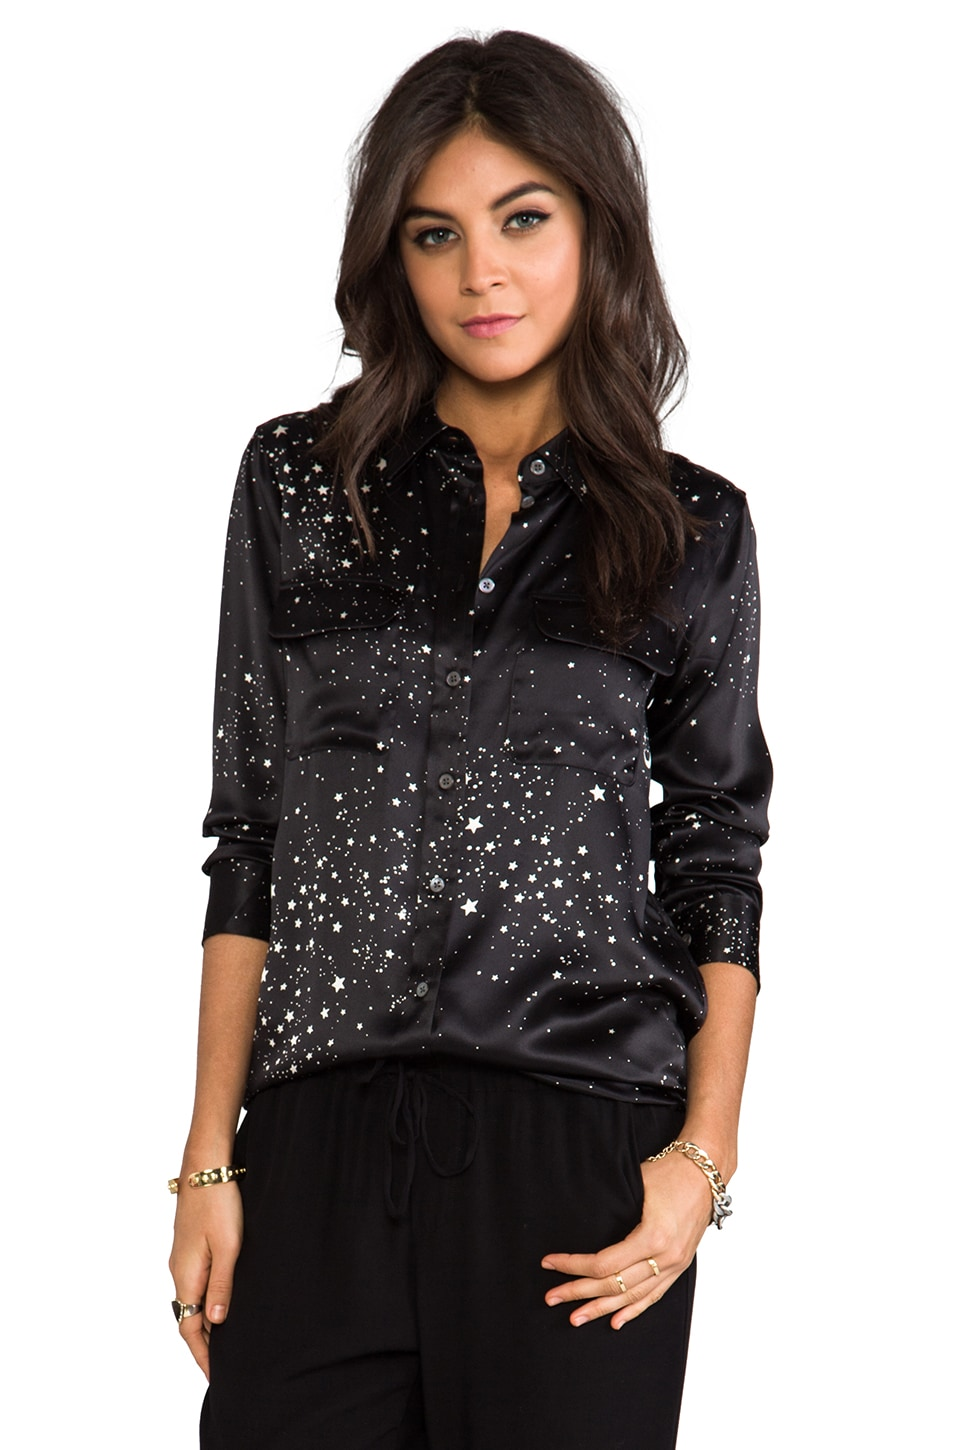 Equipment Slim Signature Astronomy Blouse in Black